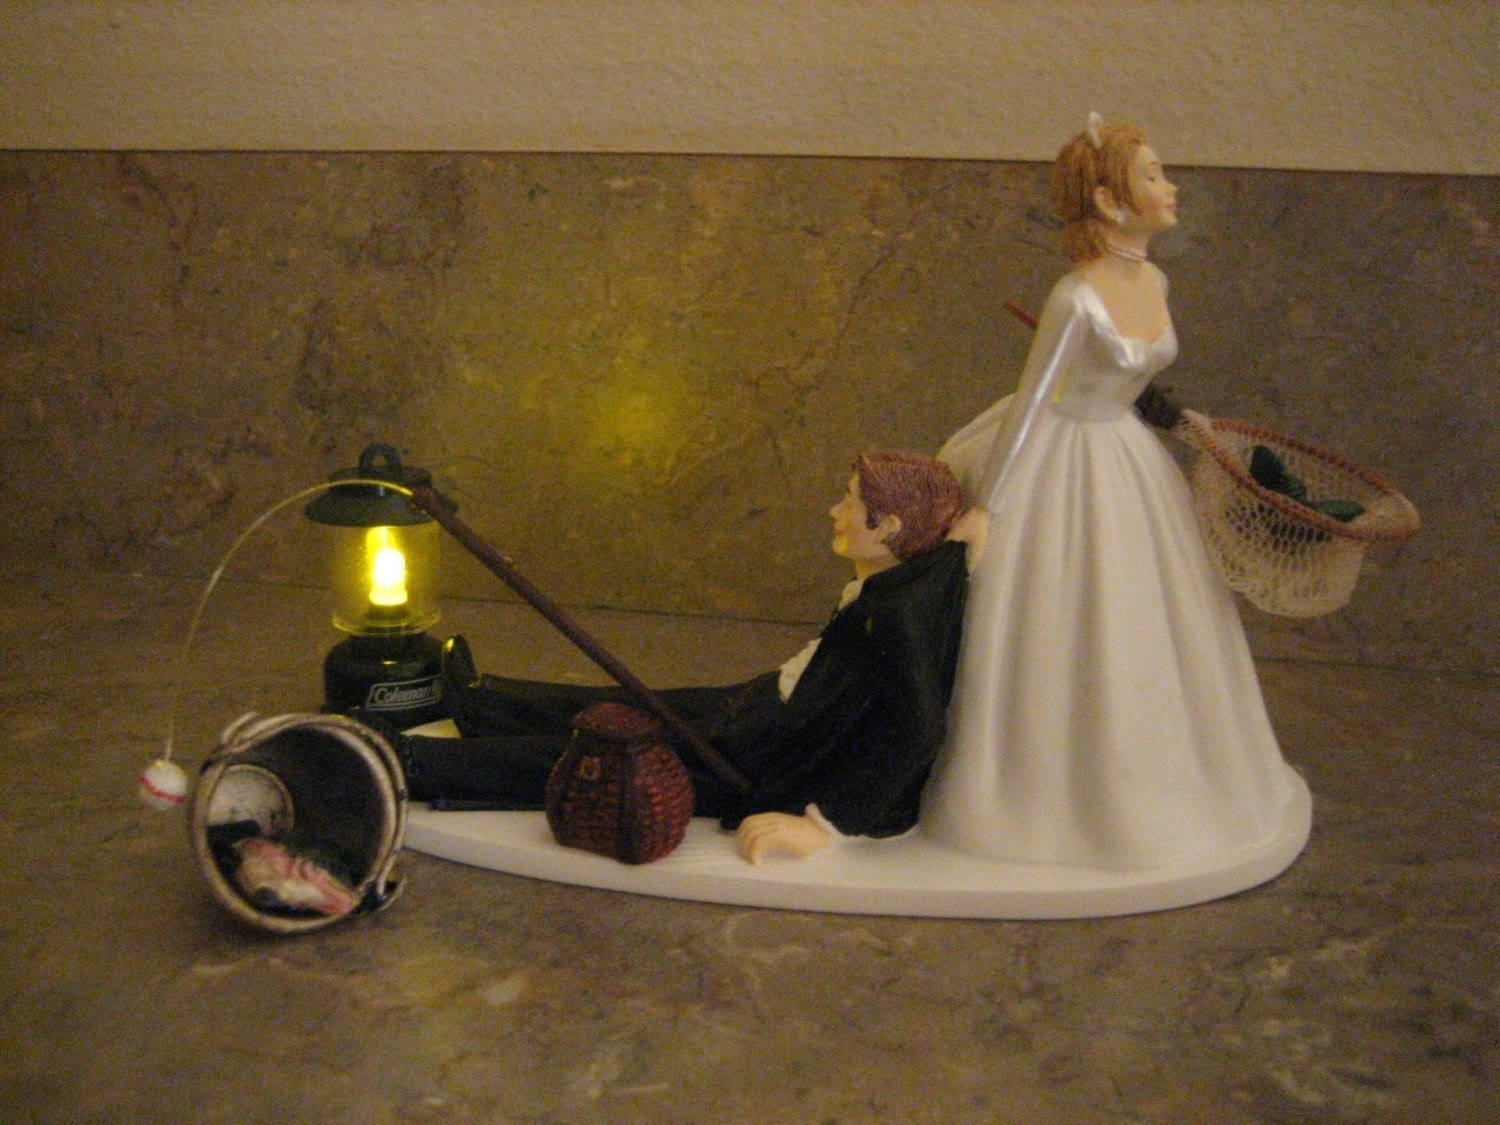 fishing themed wedding cake topper for the groom